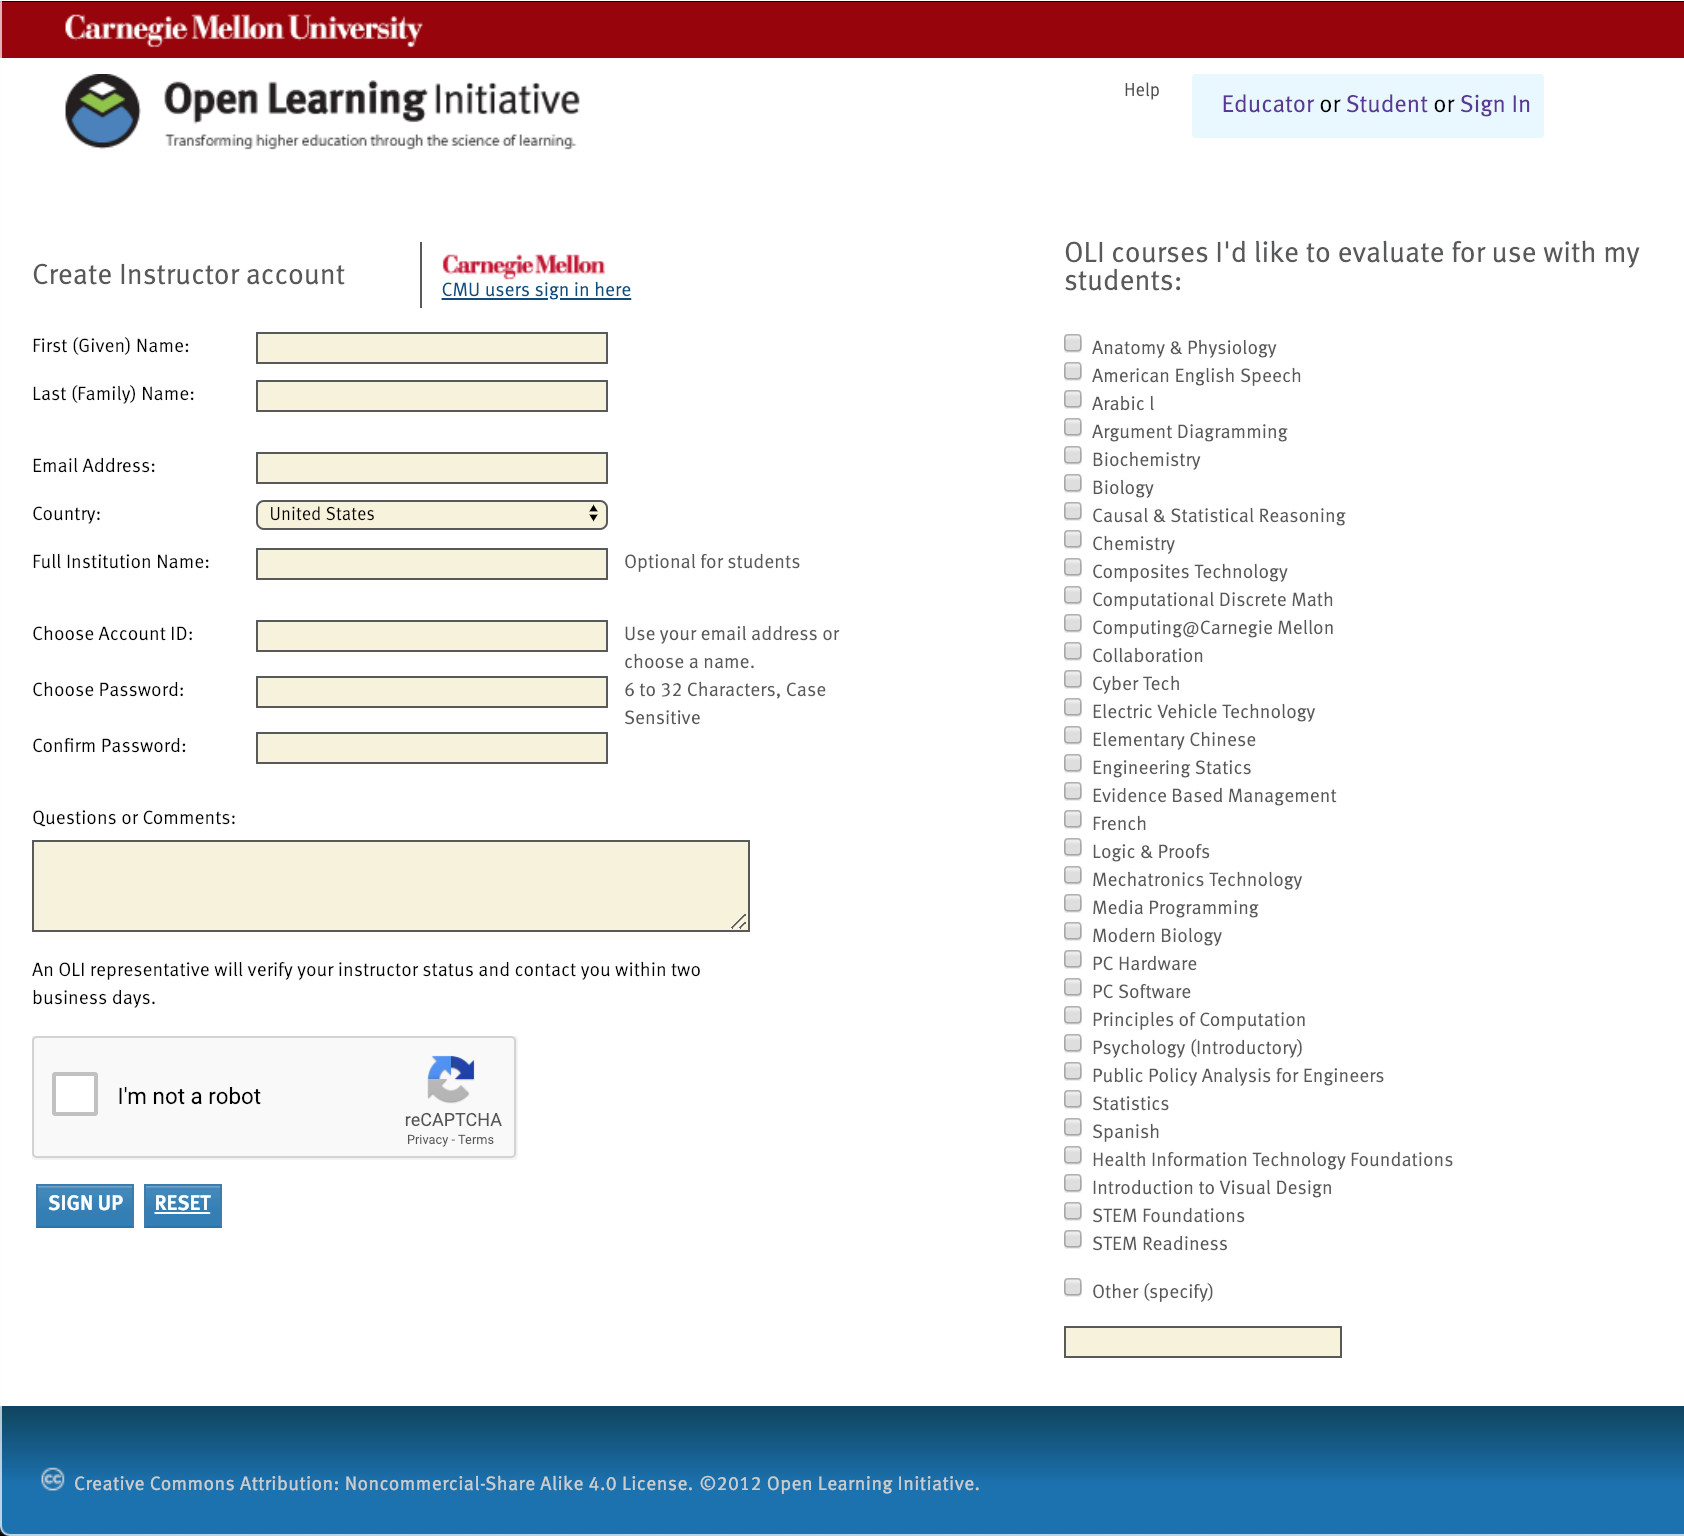 A screen capture of the Instructor request form, showing the fields the user must fill out, the Recaptcha tool, and the list of courses available for evaluation.